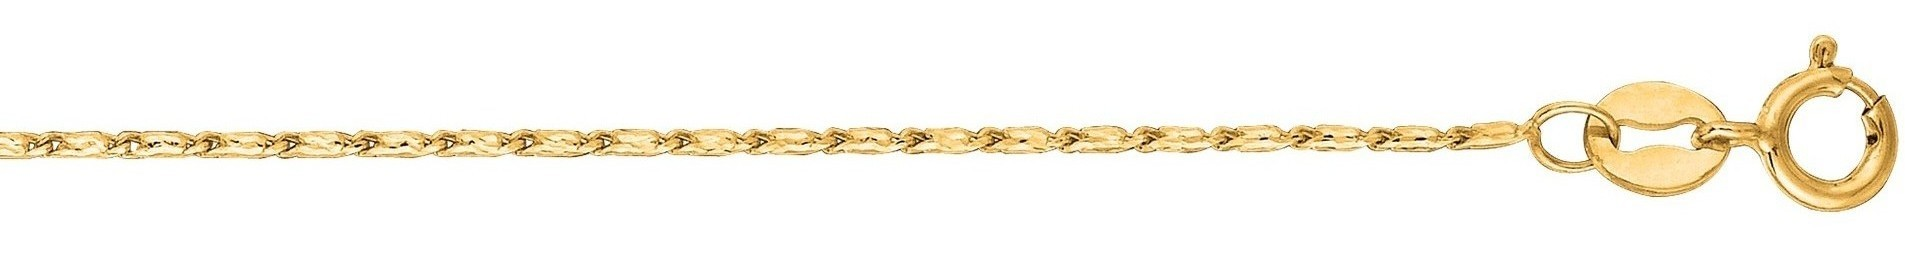 "16"" 14K Yellow Gold 0.8mm (0.03"") Polished Diamond Cut Lumina Pendant Chain w/ Spring Ring Clasp"